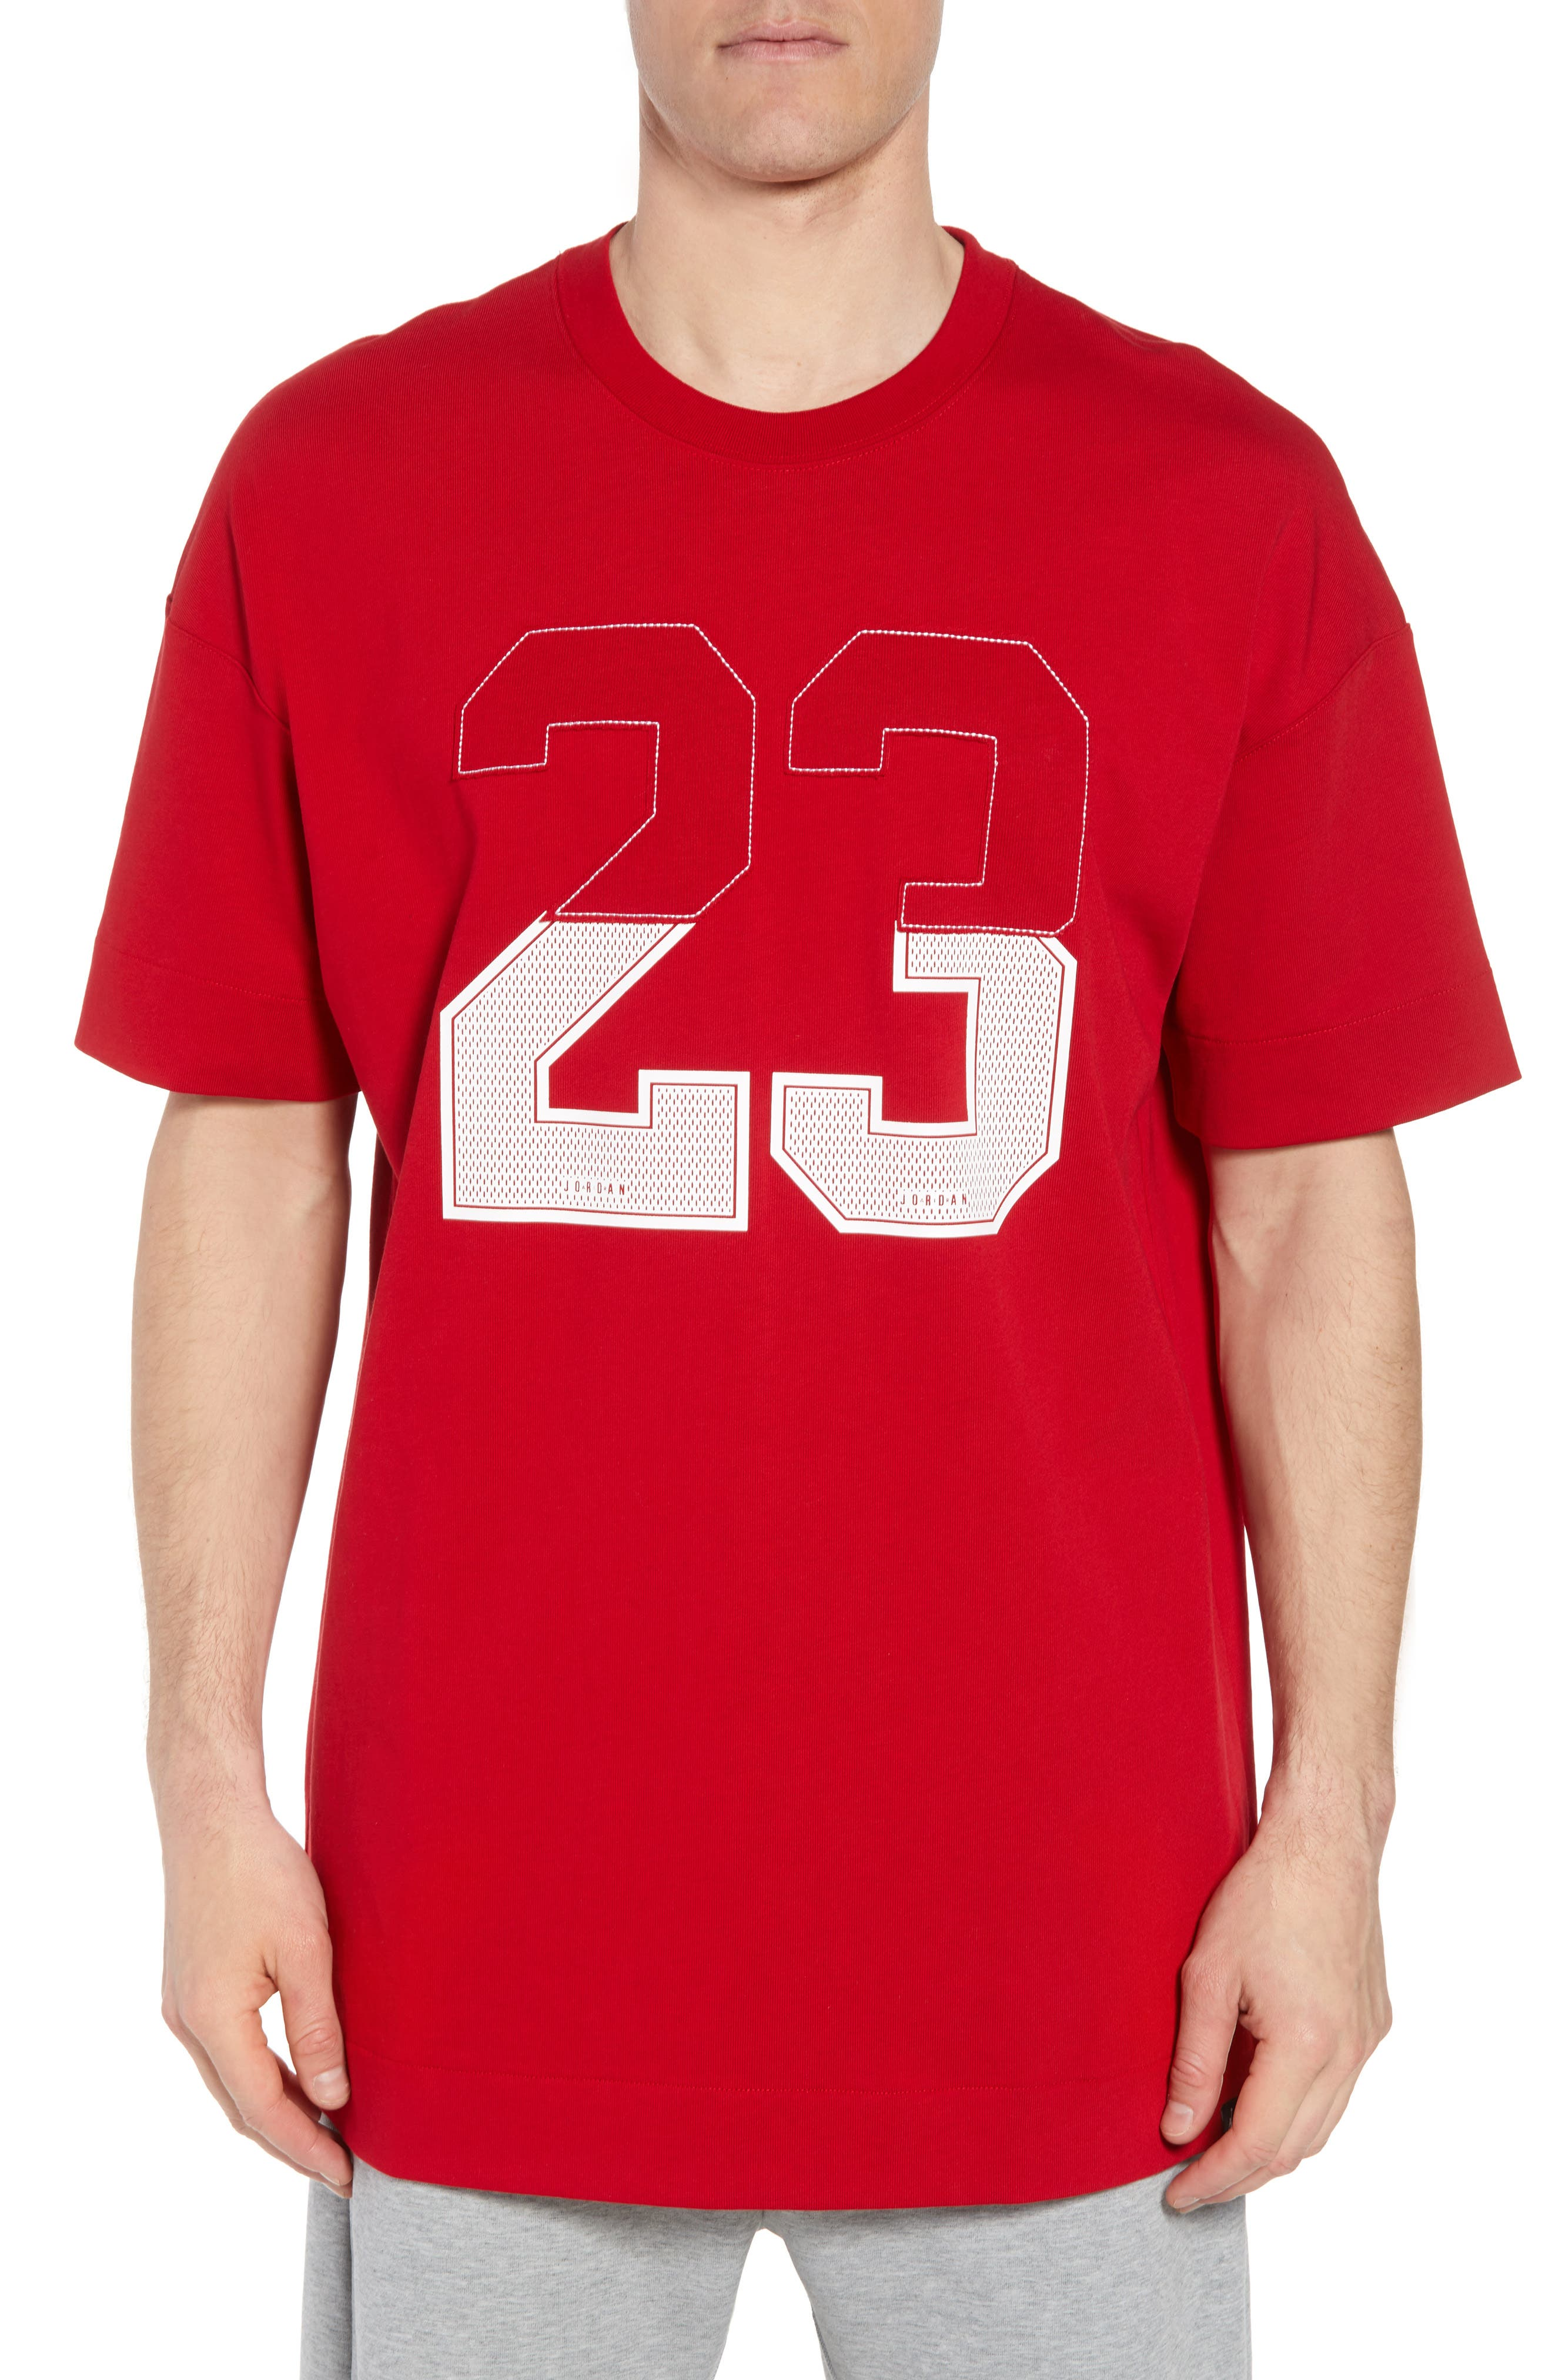 Nike Oversize 23 Graphic T-Shirt,                             Main thumbnail 1, color,                             GYM RED/ WHITE